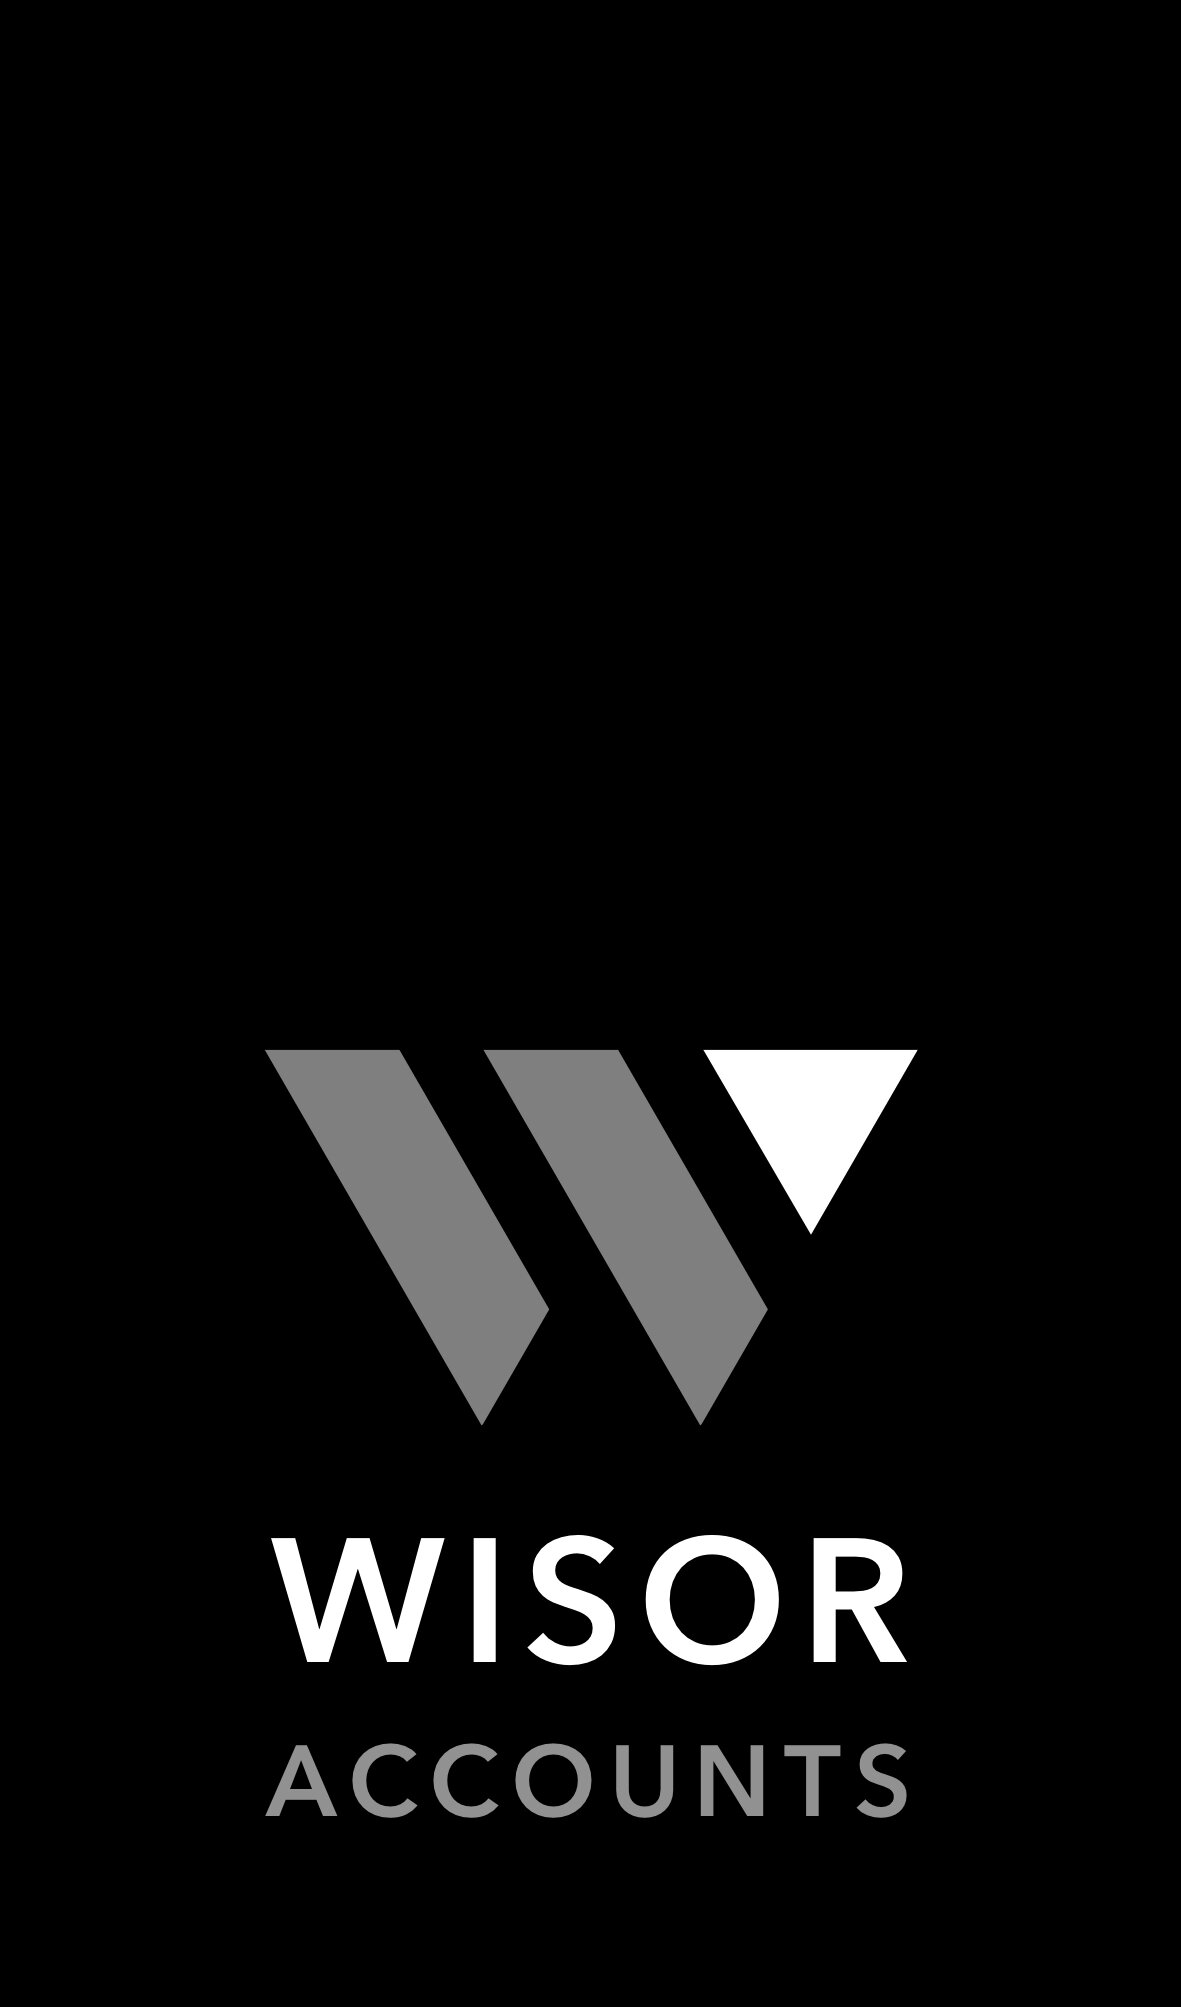 Wisor Accounts Document Logo.heic  For download click on image.